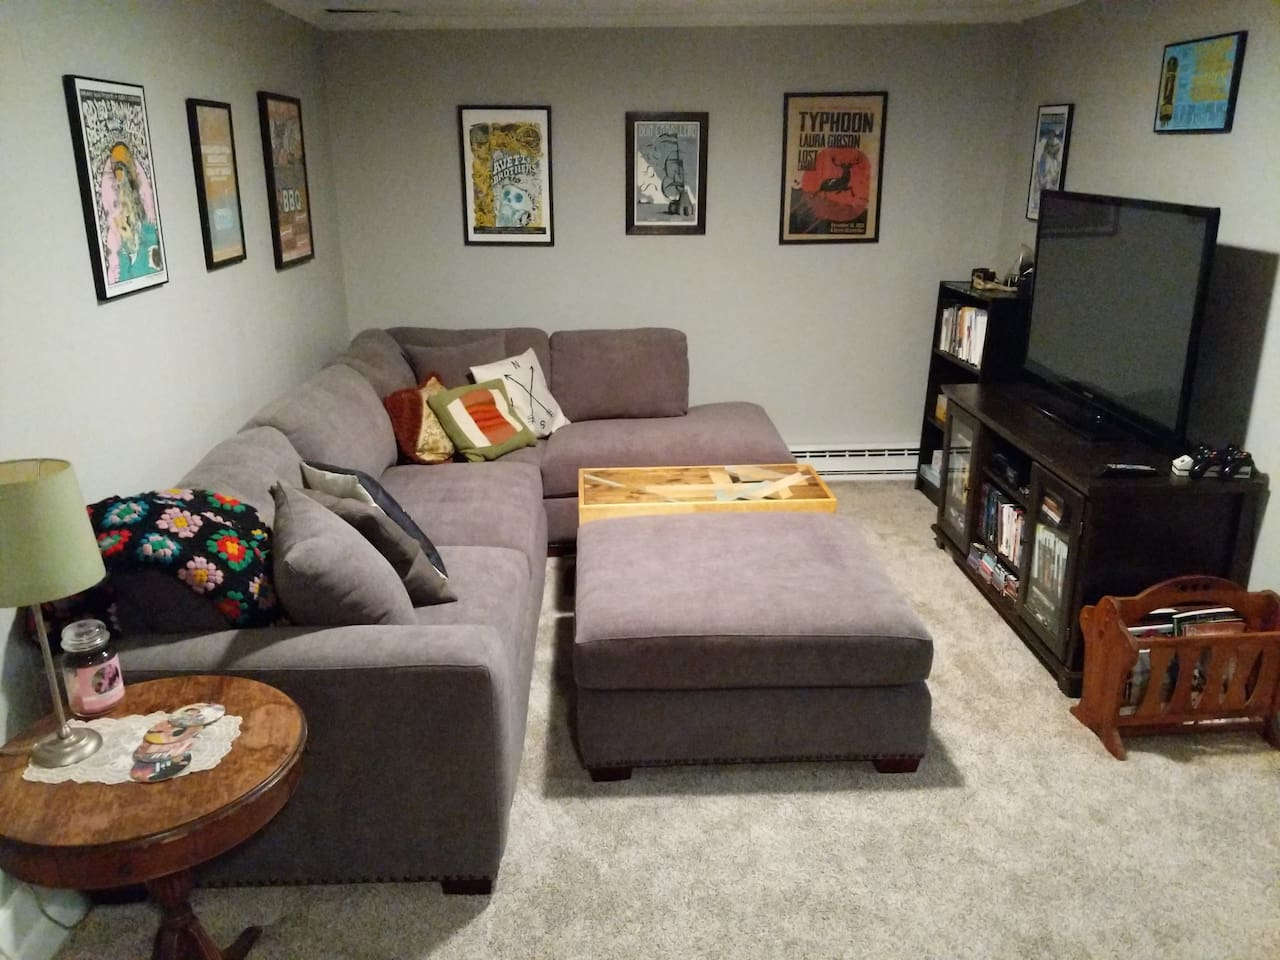 Living room and brand new, super comfy and gigantic couch!